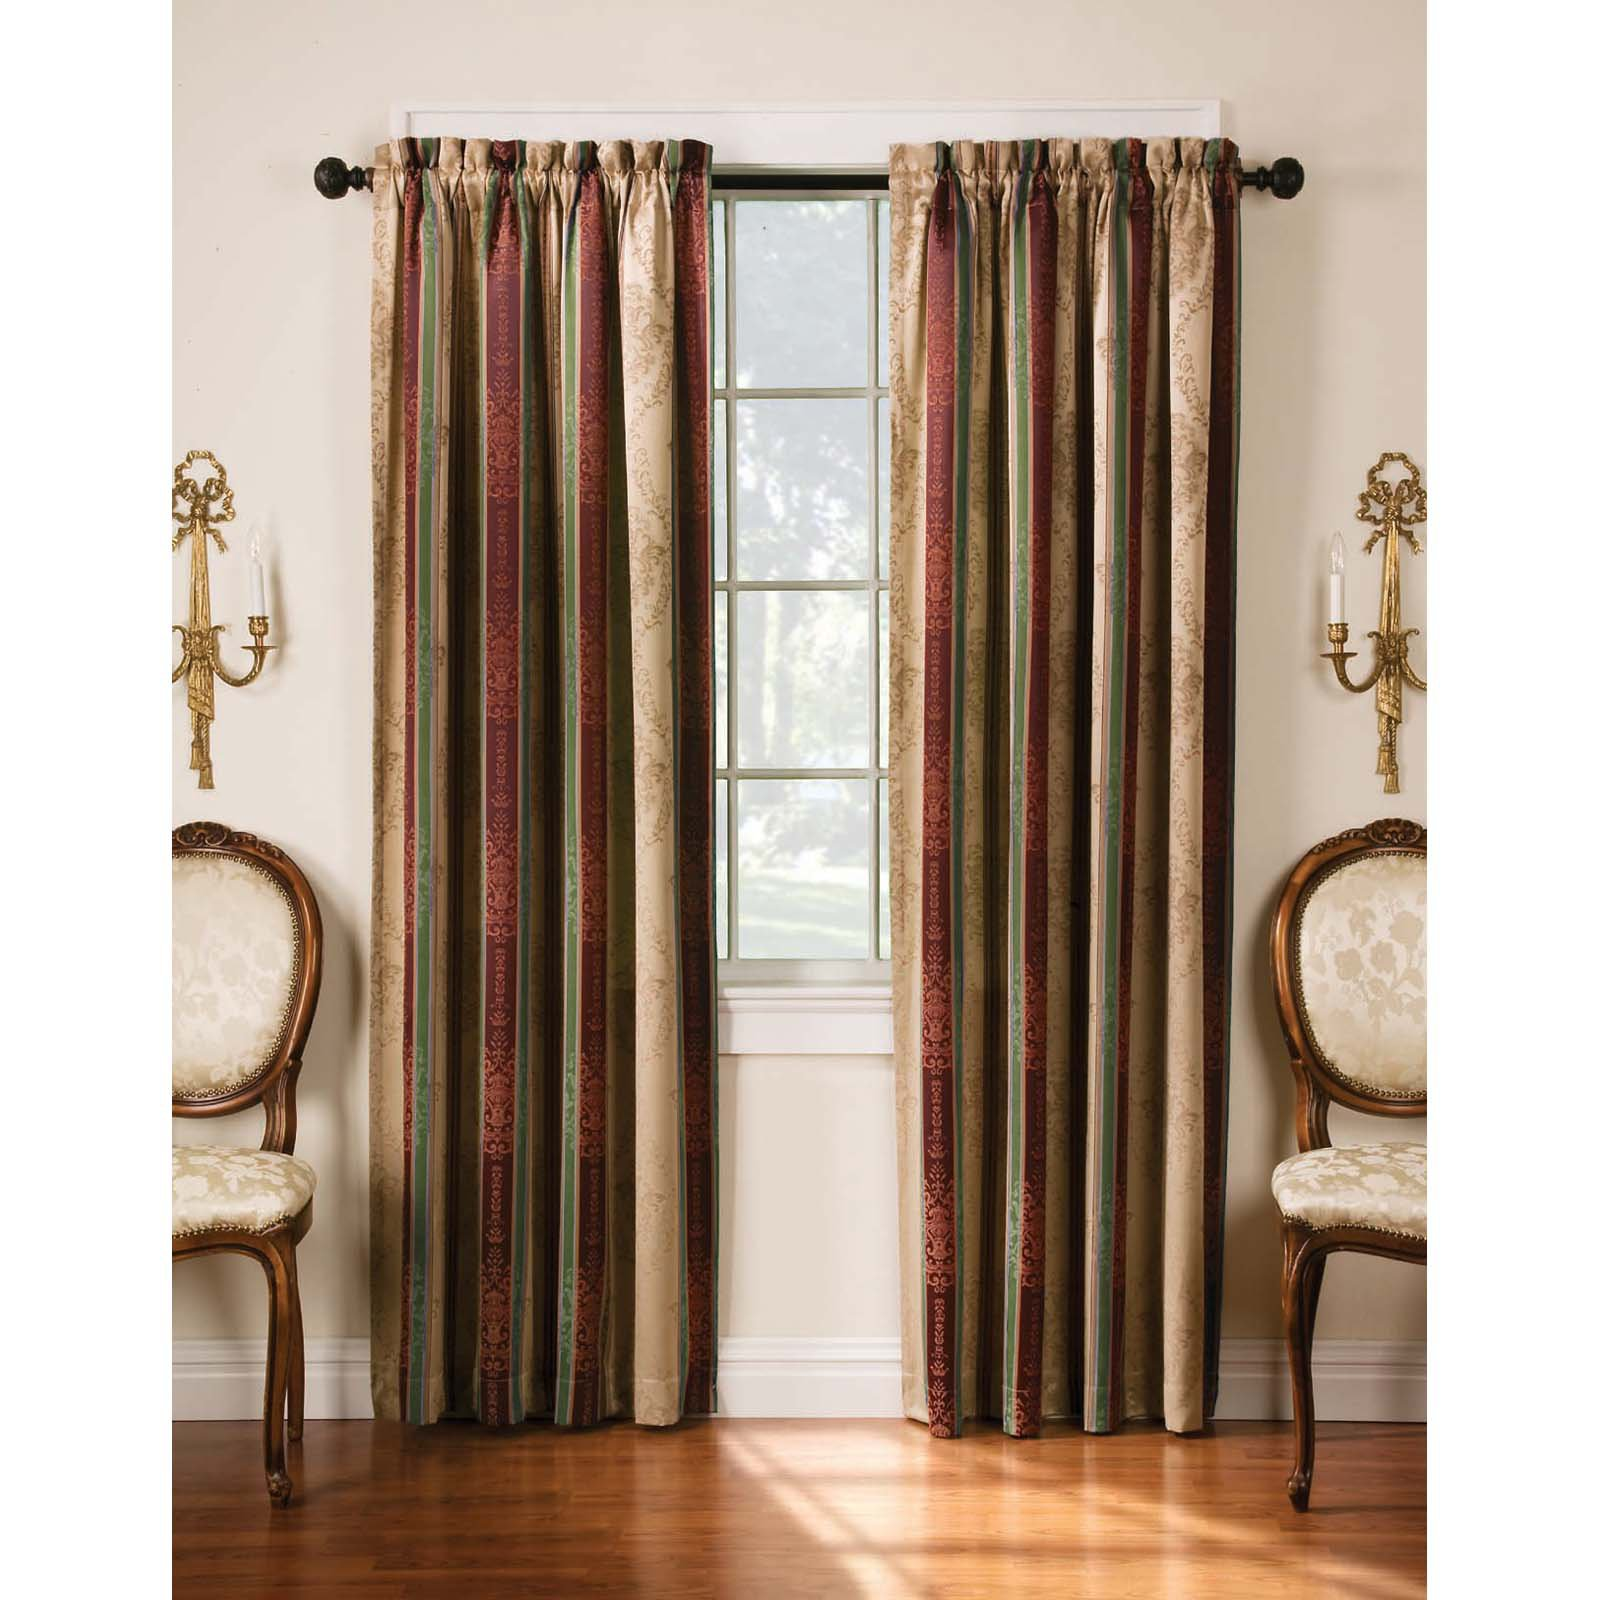 Cheap Blackout Curtains for Inspiring Home Decorating Ideas: White Light Blocking Curtains | Cheap Blackout Curtains | Drapes With Blackout Lining